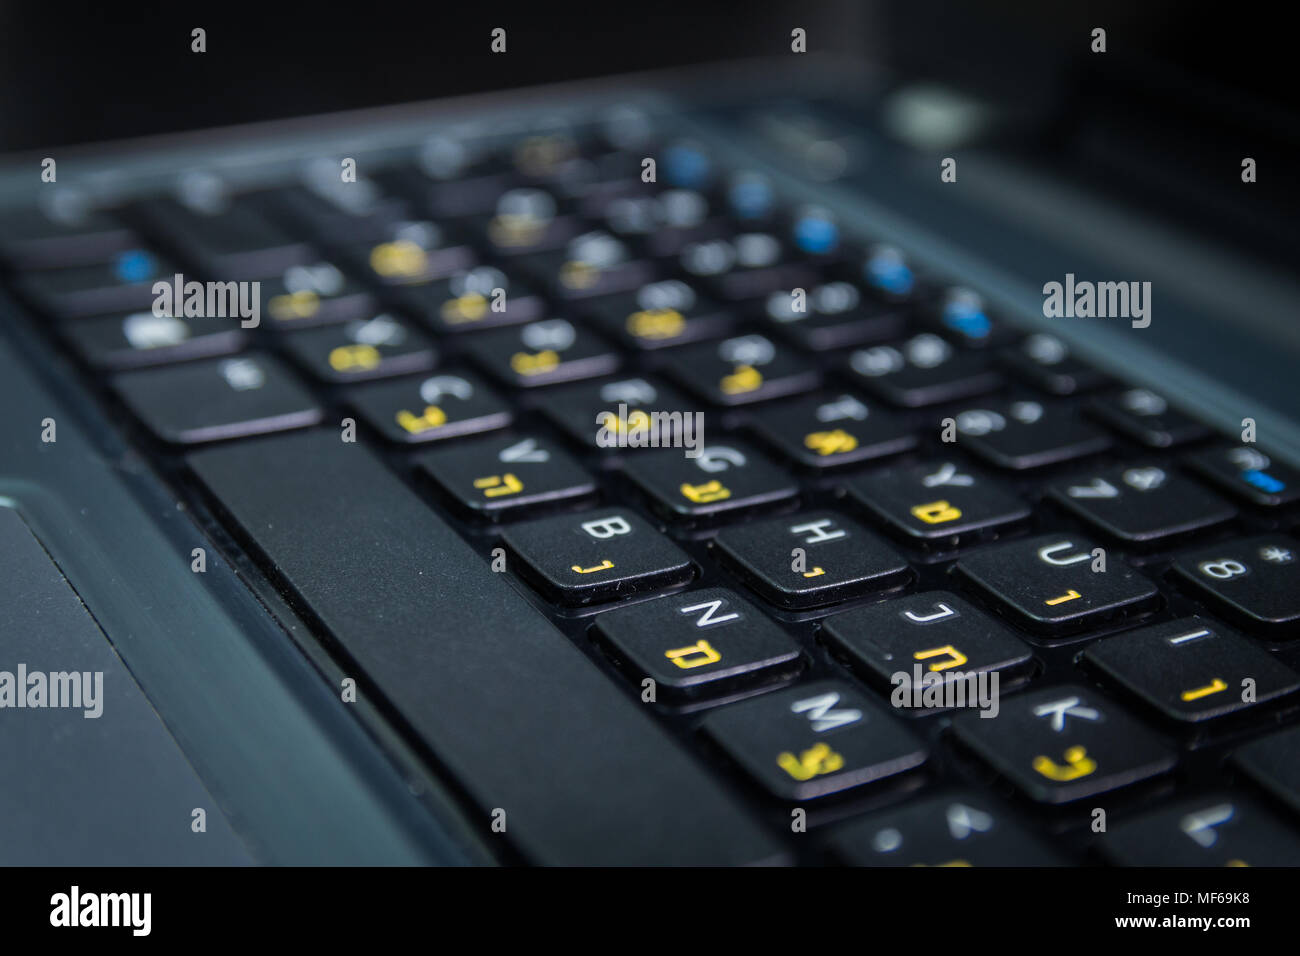 Keyboard with letters in Hebrew and English - Laptop keyboard - Close up - Dark atmosphere - Stock Image